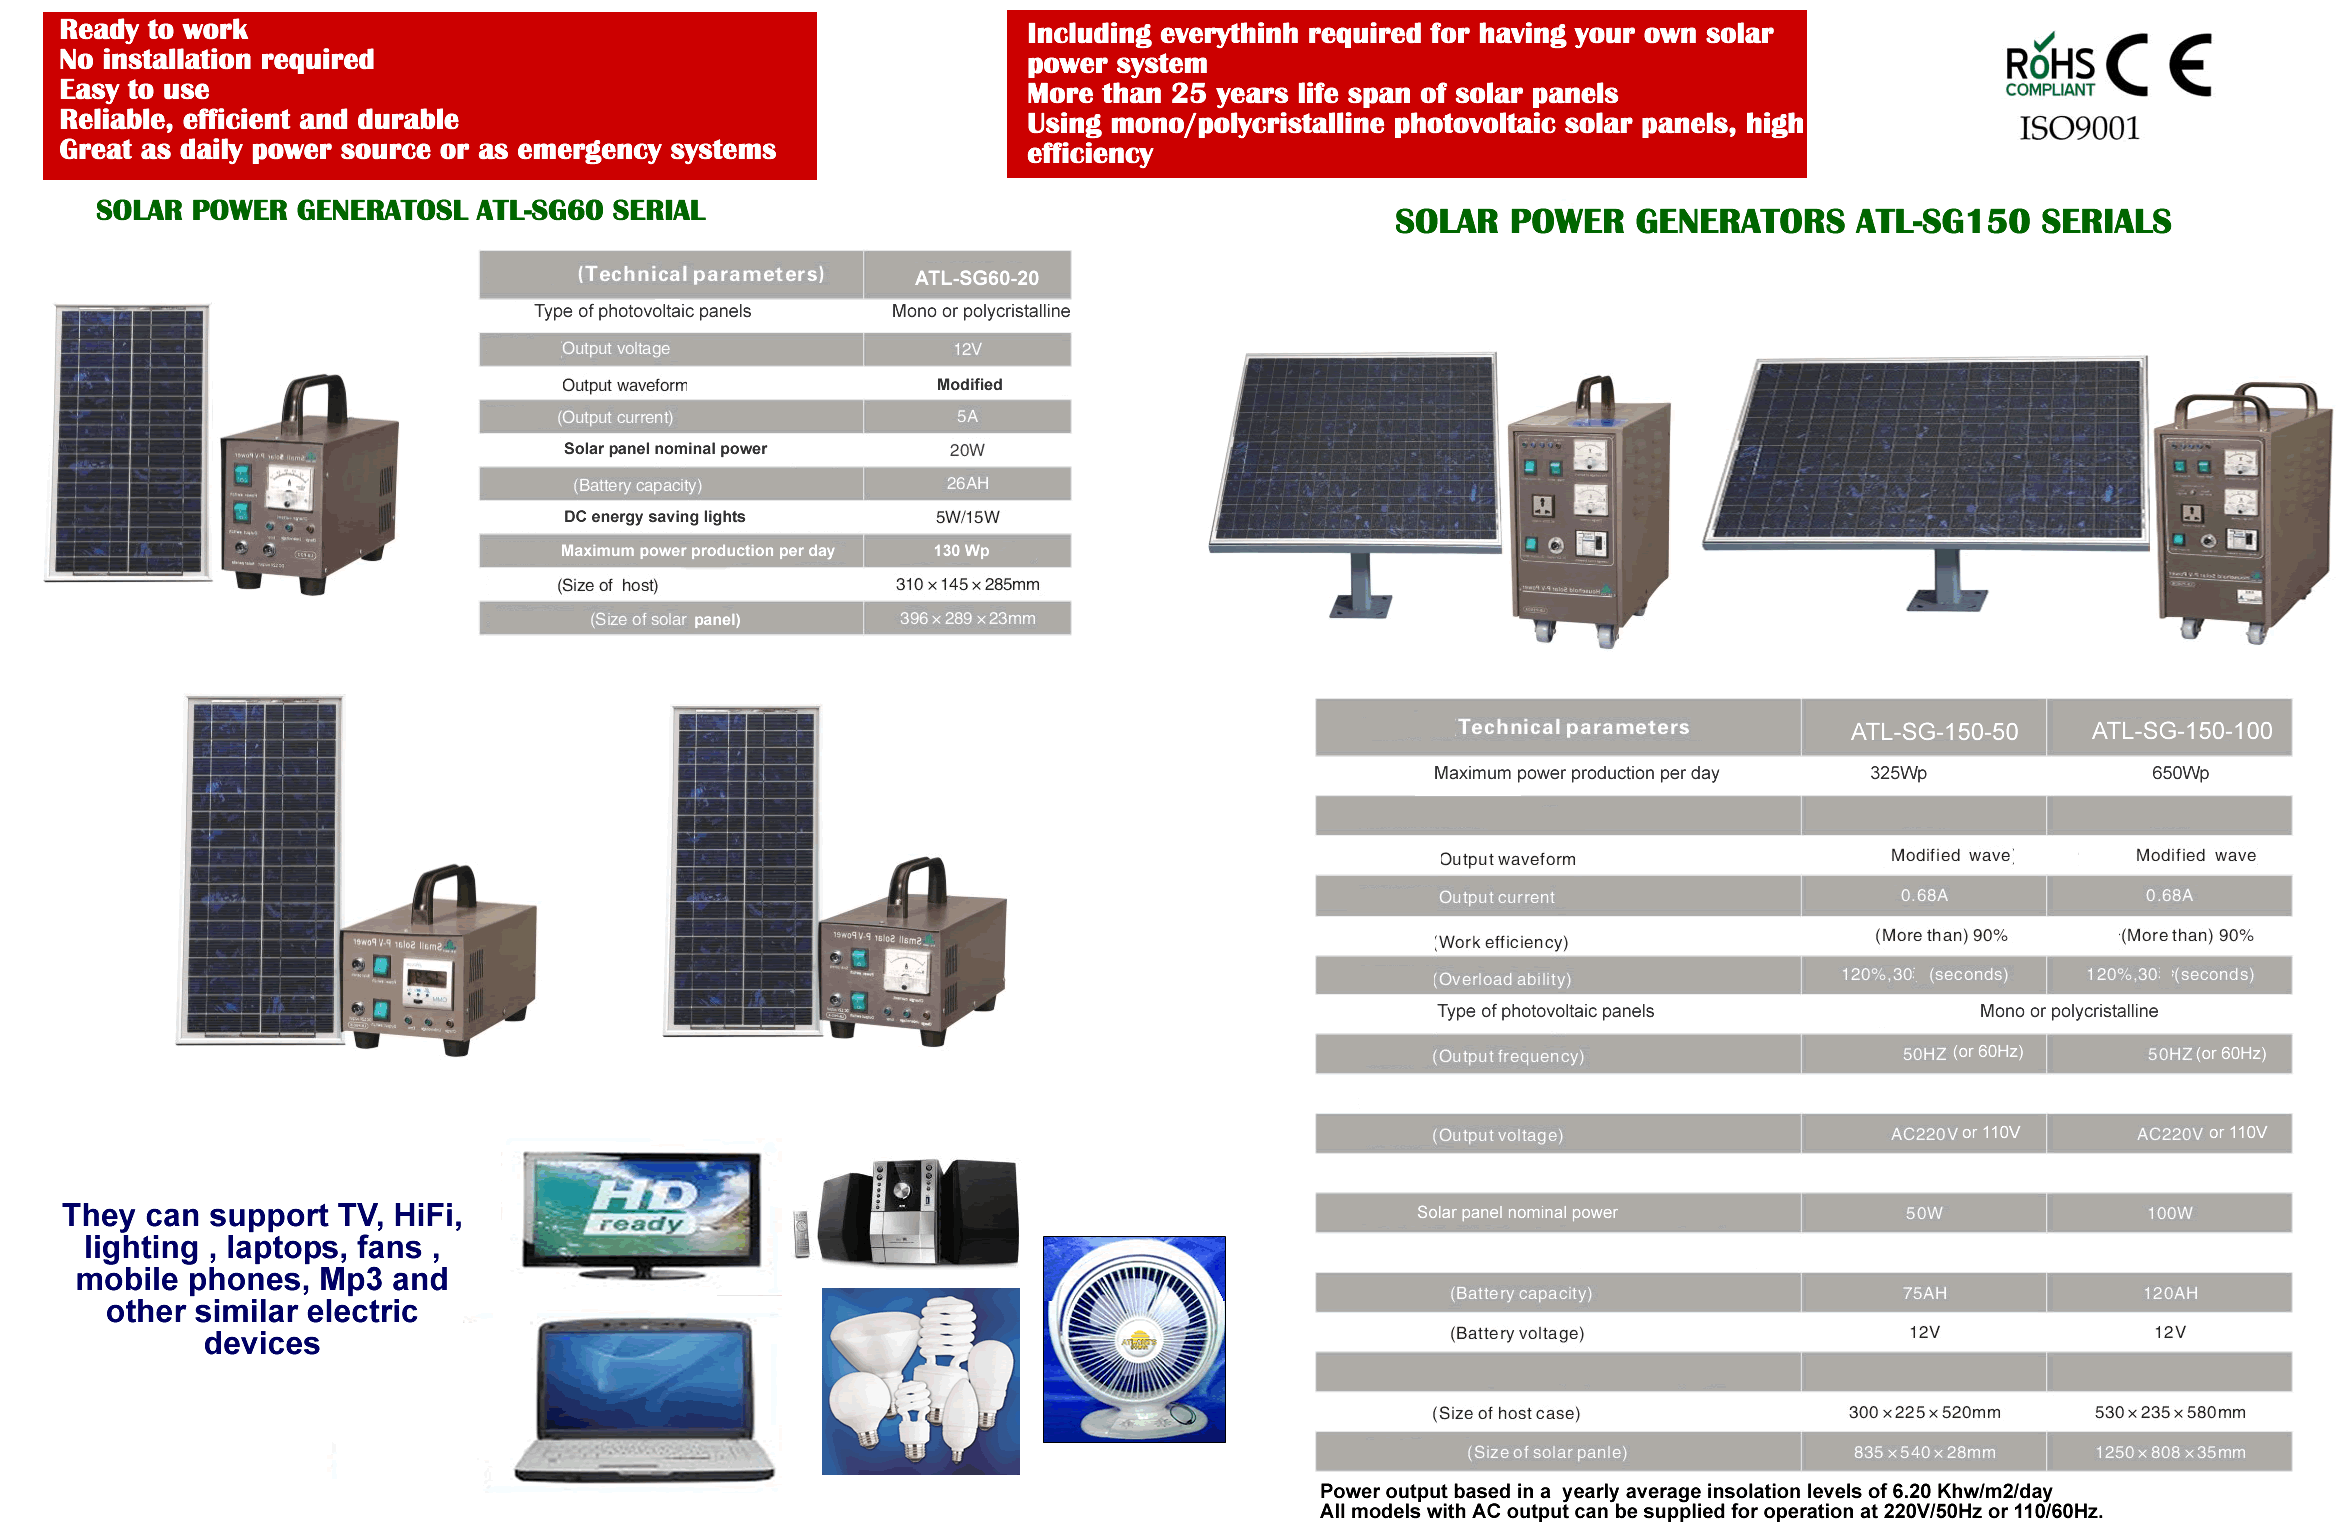 Solar power generators SG60-SG150 serials with max.output 650Wh-day-1